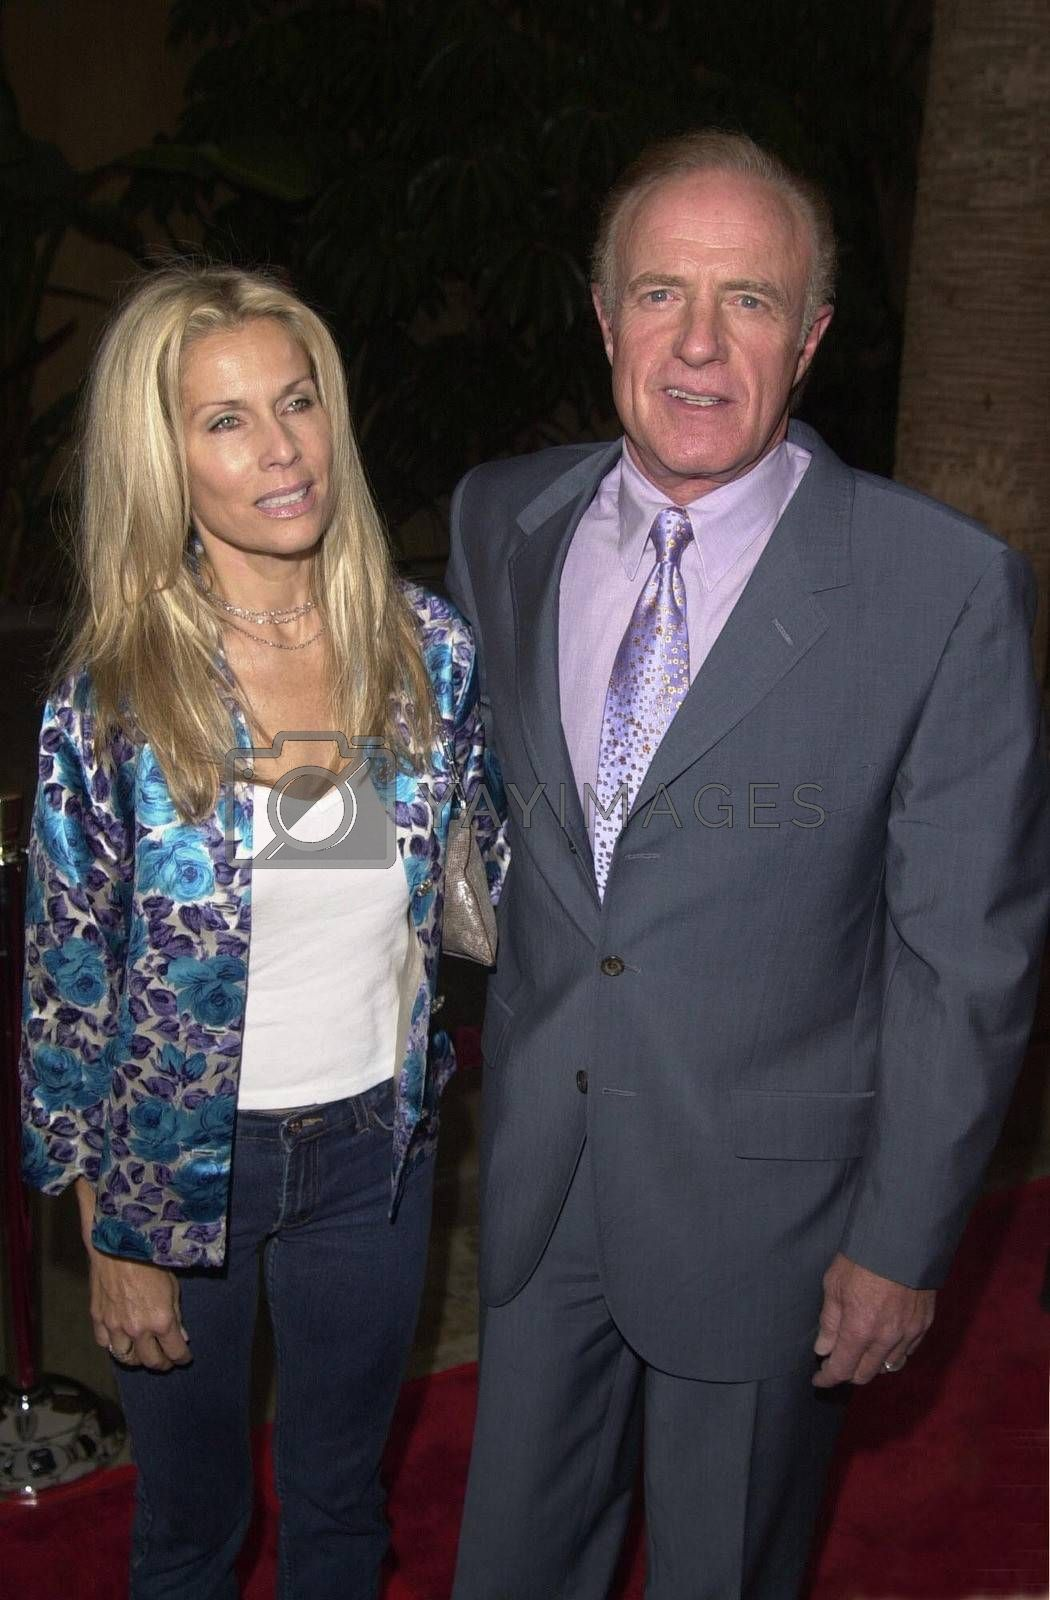 James Caan and Linda Stokes at the premiere of The Way Of The Gun in Hollywood. 08-29-00